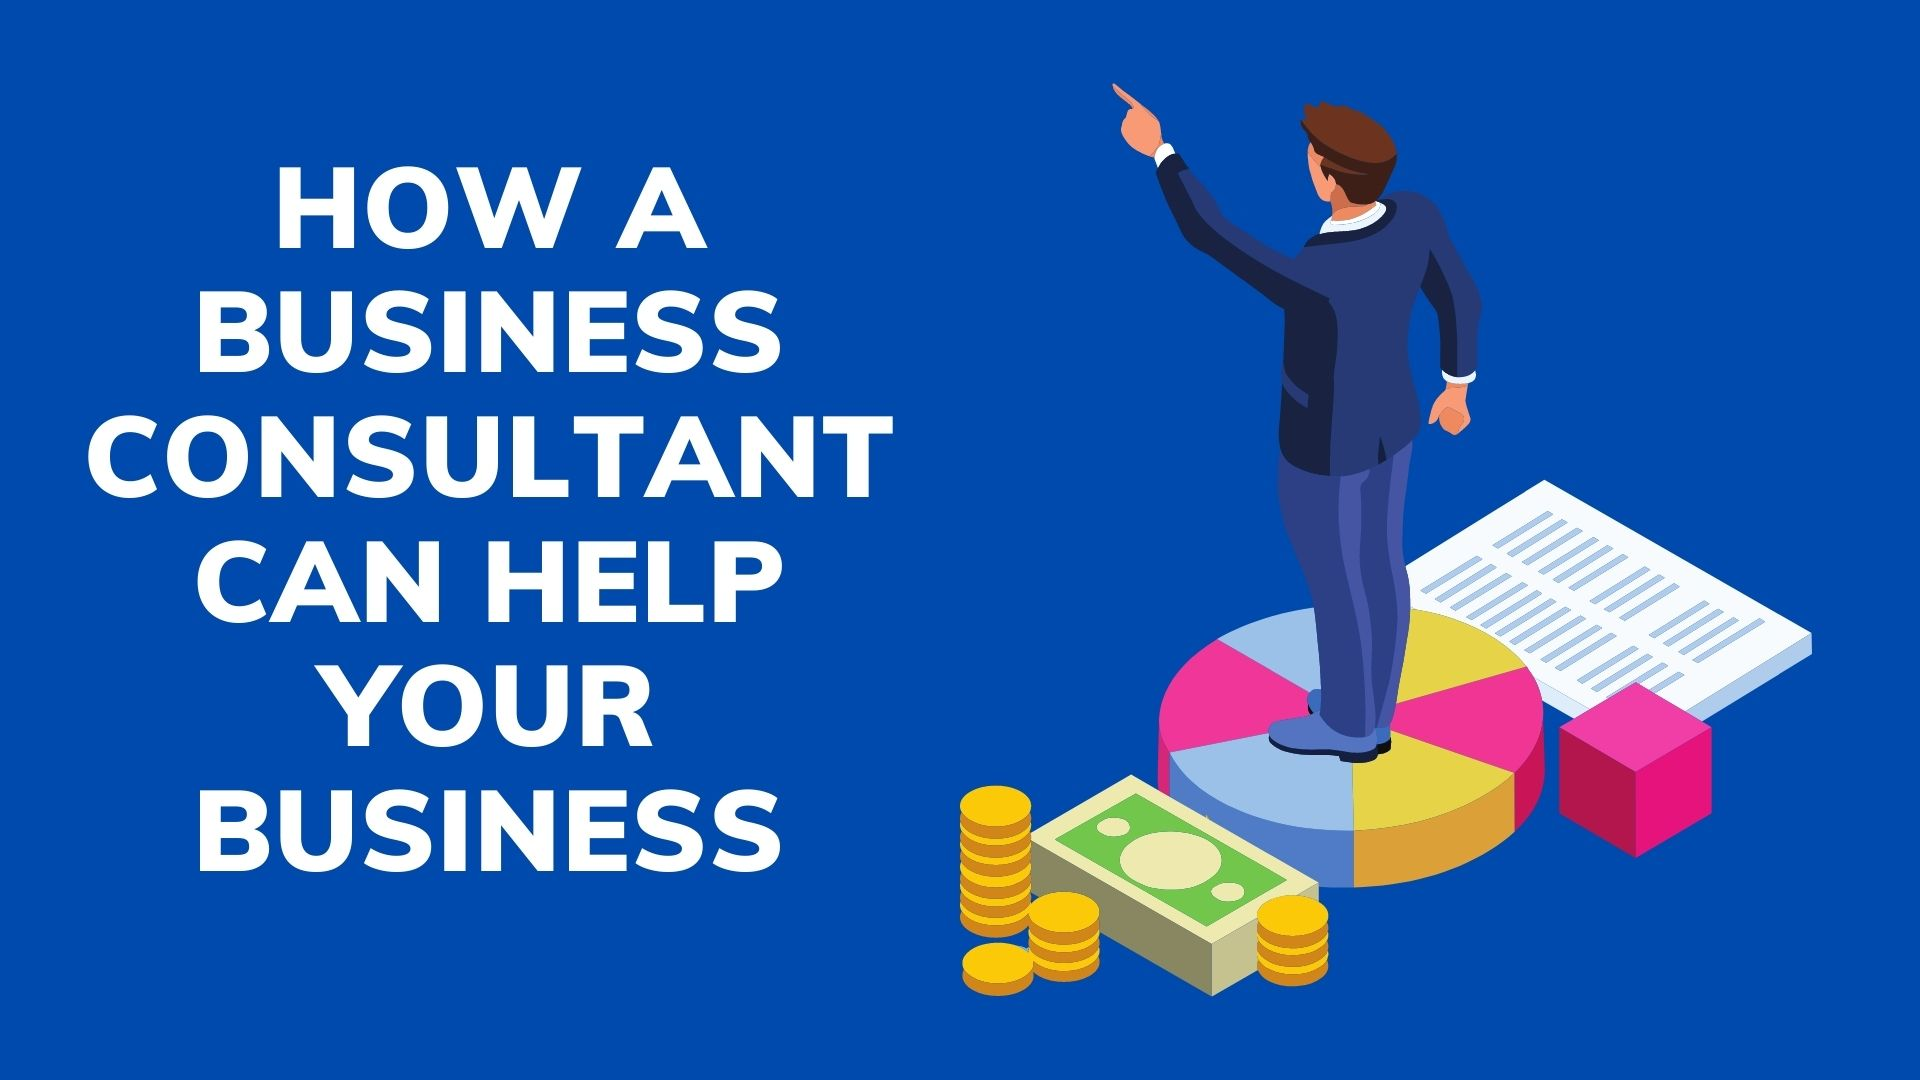 How a Business Consultant can help your Business